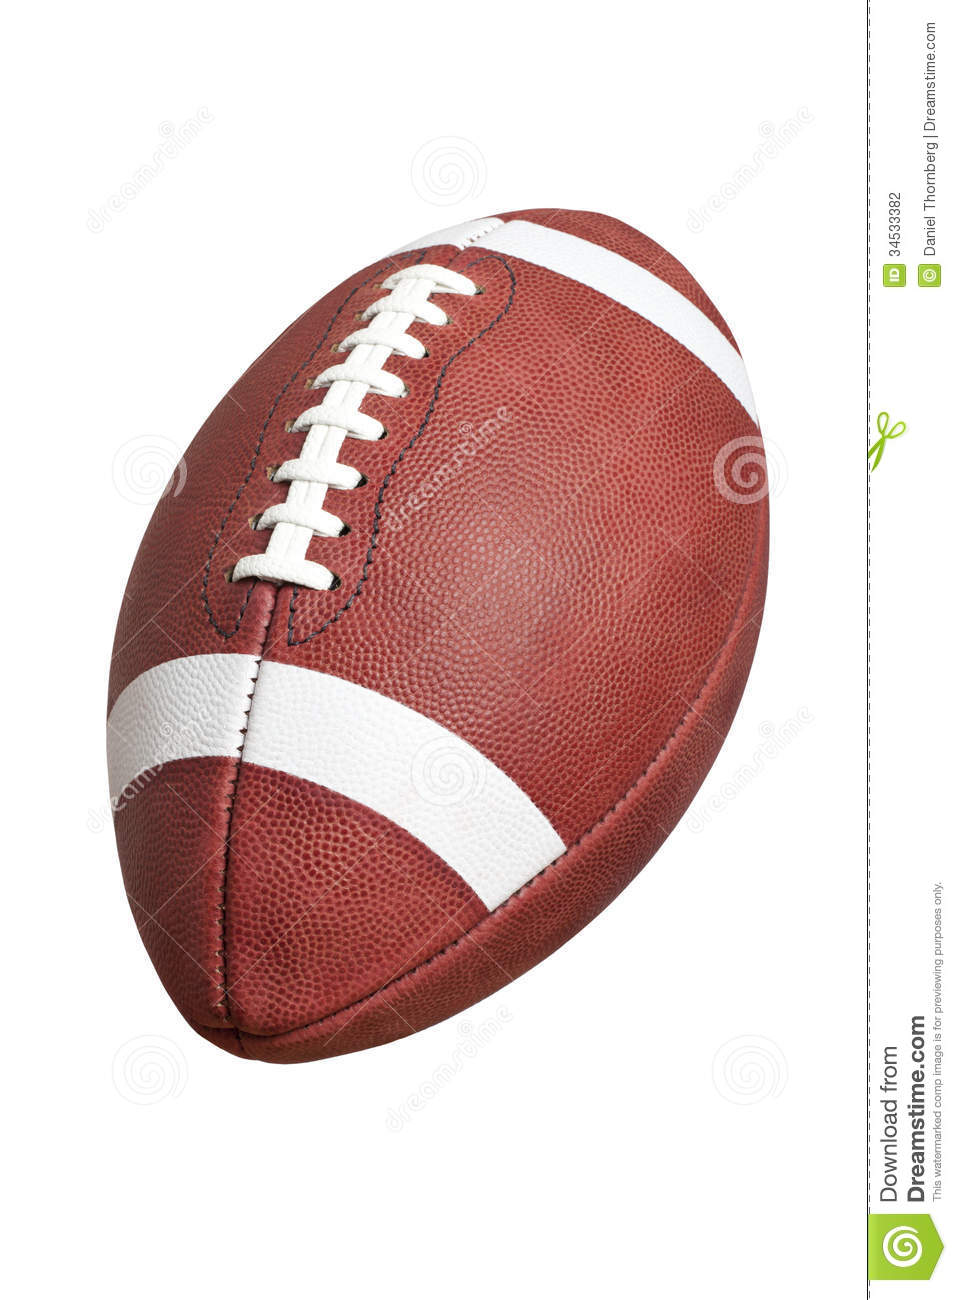 official college football collge football